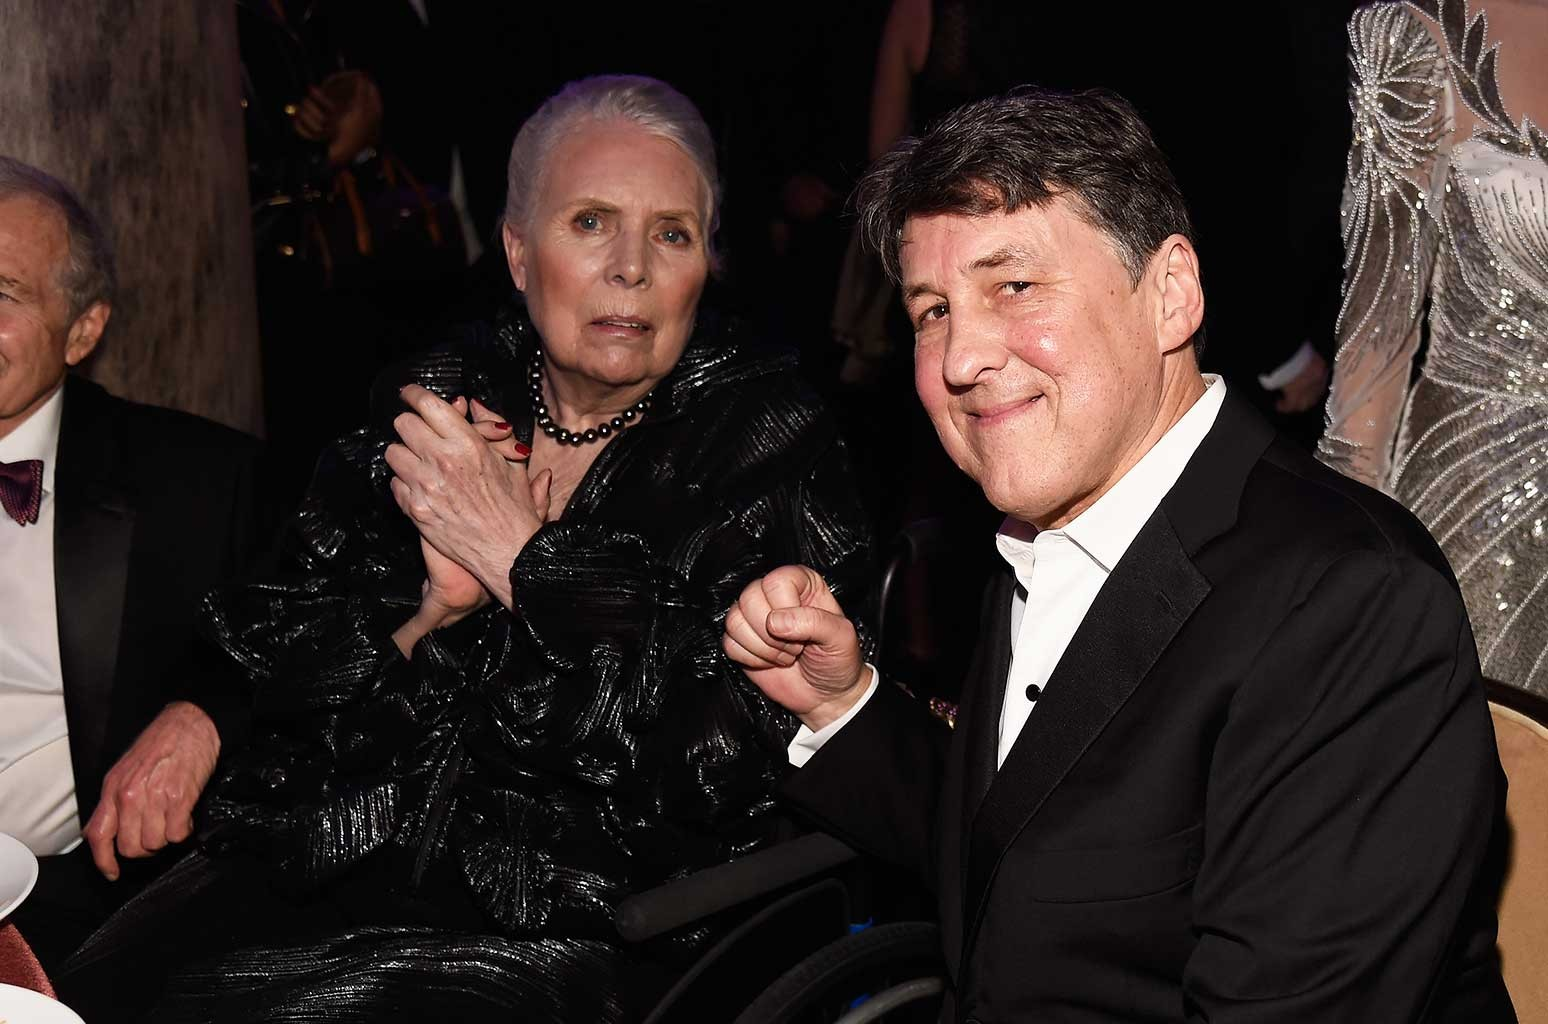 Joni Mitchell and director Cameron Crowe attend Pre-Grammy Gala and Salute to Industry Icons Honoring Debra Lee at The Beverly Hilton on Feb. 11, 2017 in Los Angeles.